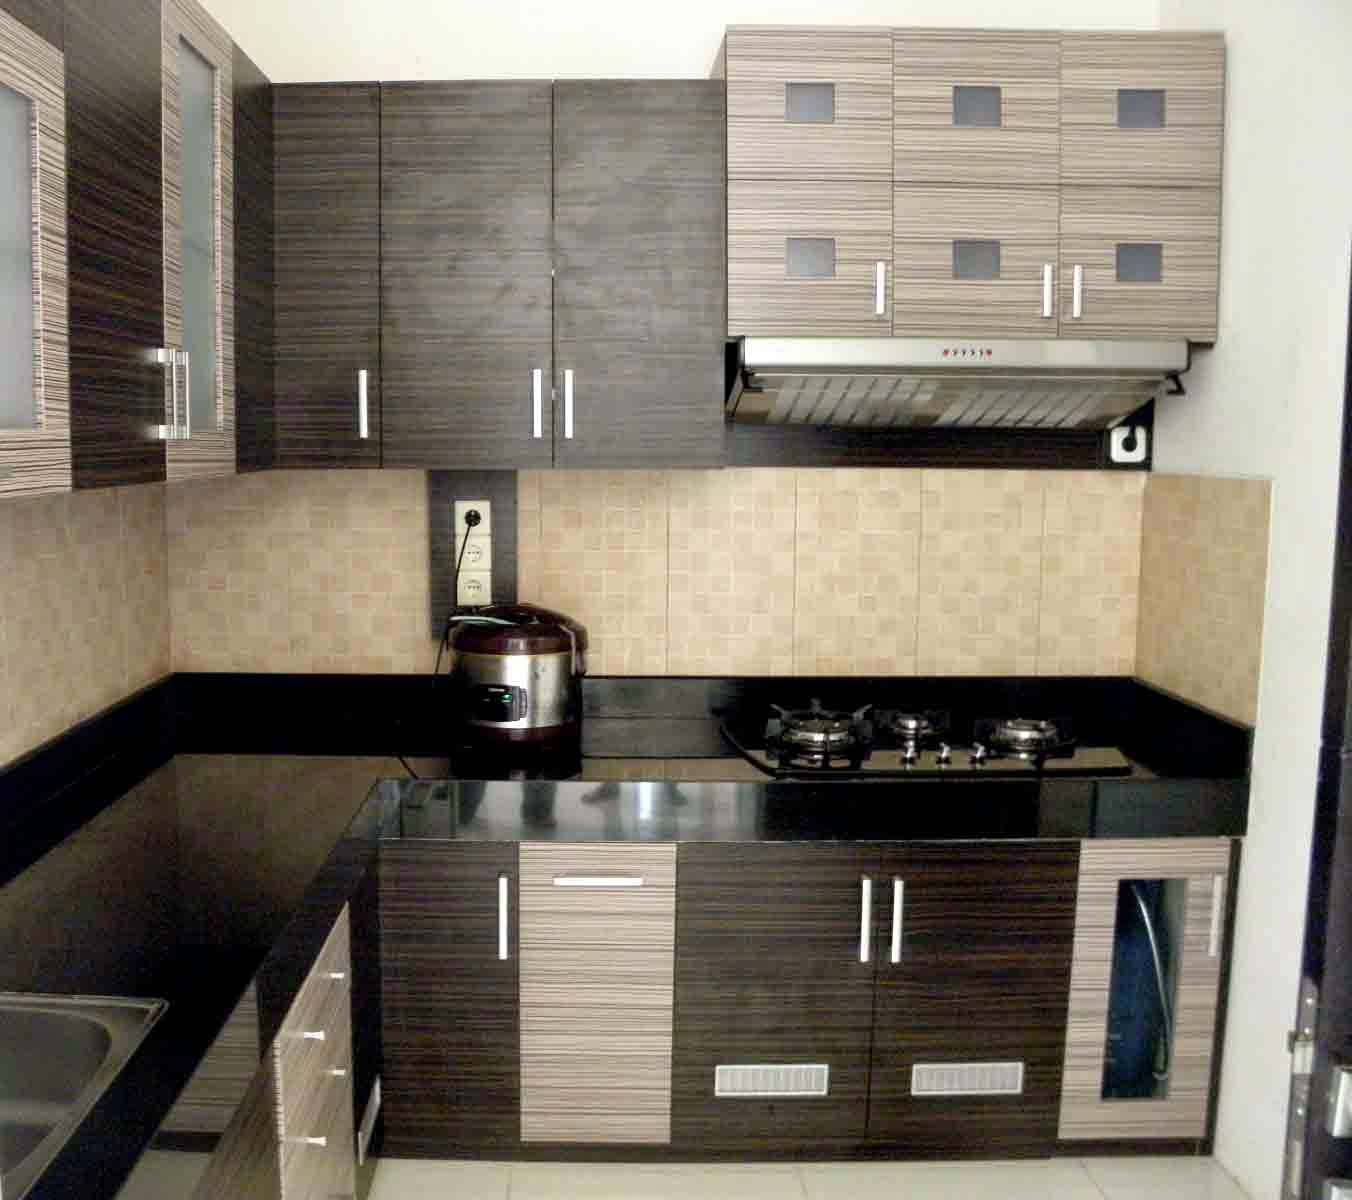 Harga Kitchen Set Minimalis Dapur Kecil Kitchen Appliances Tips